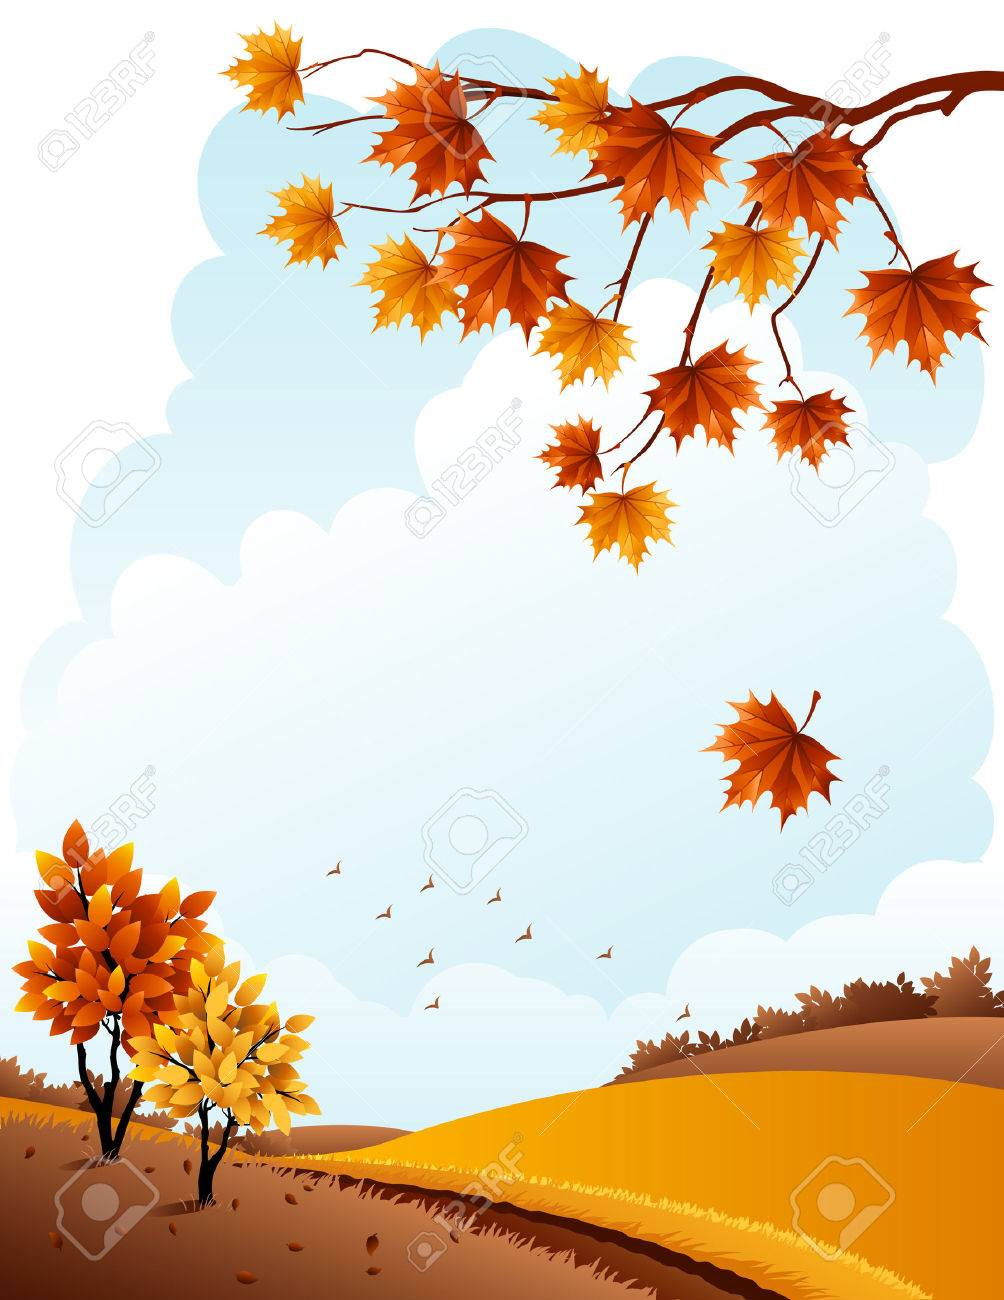 illustration - autumn rural landscape and maple branch Stock Vector - 7816901